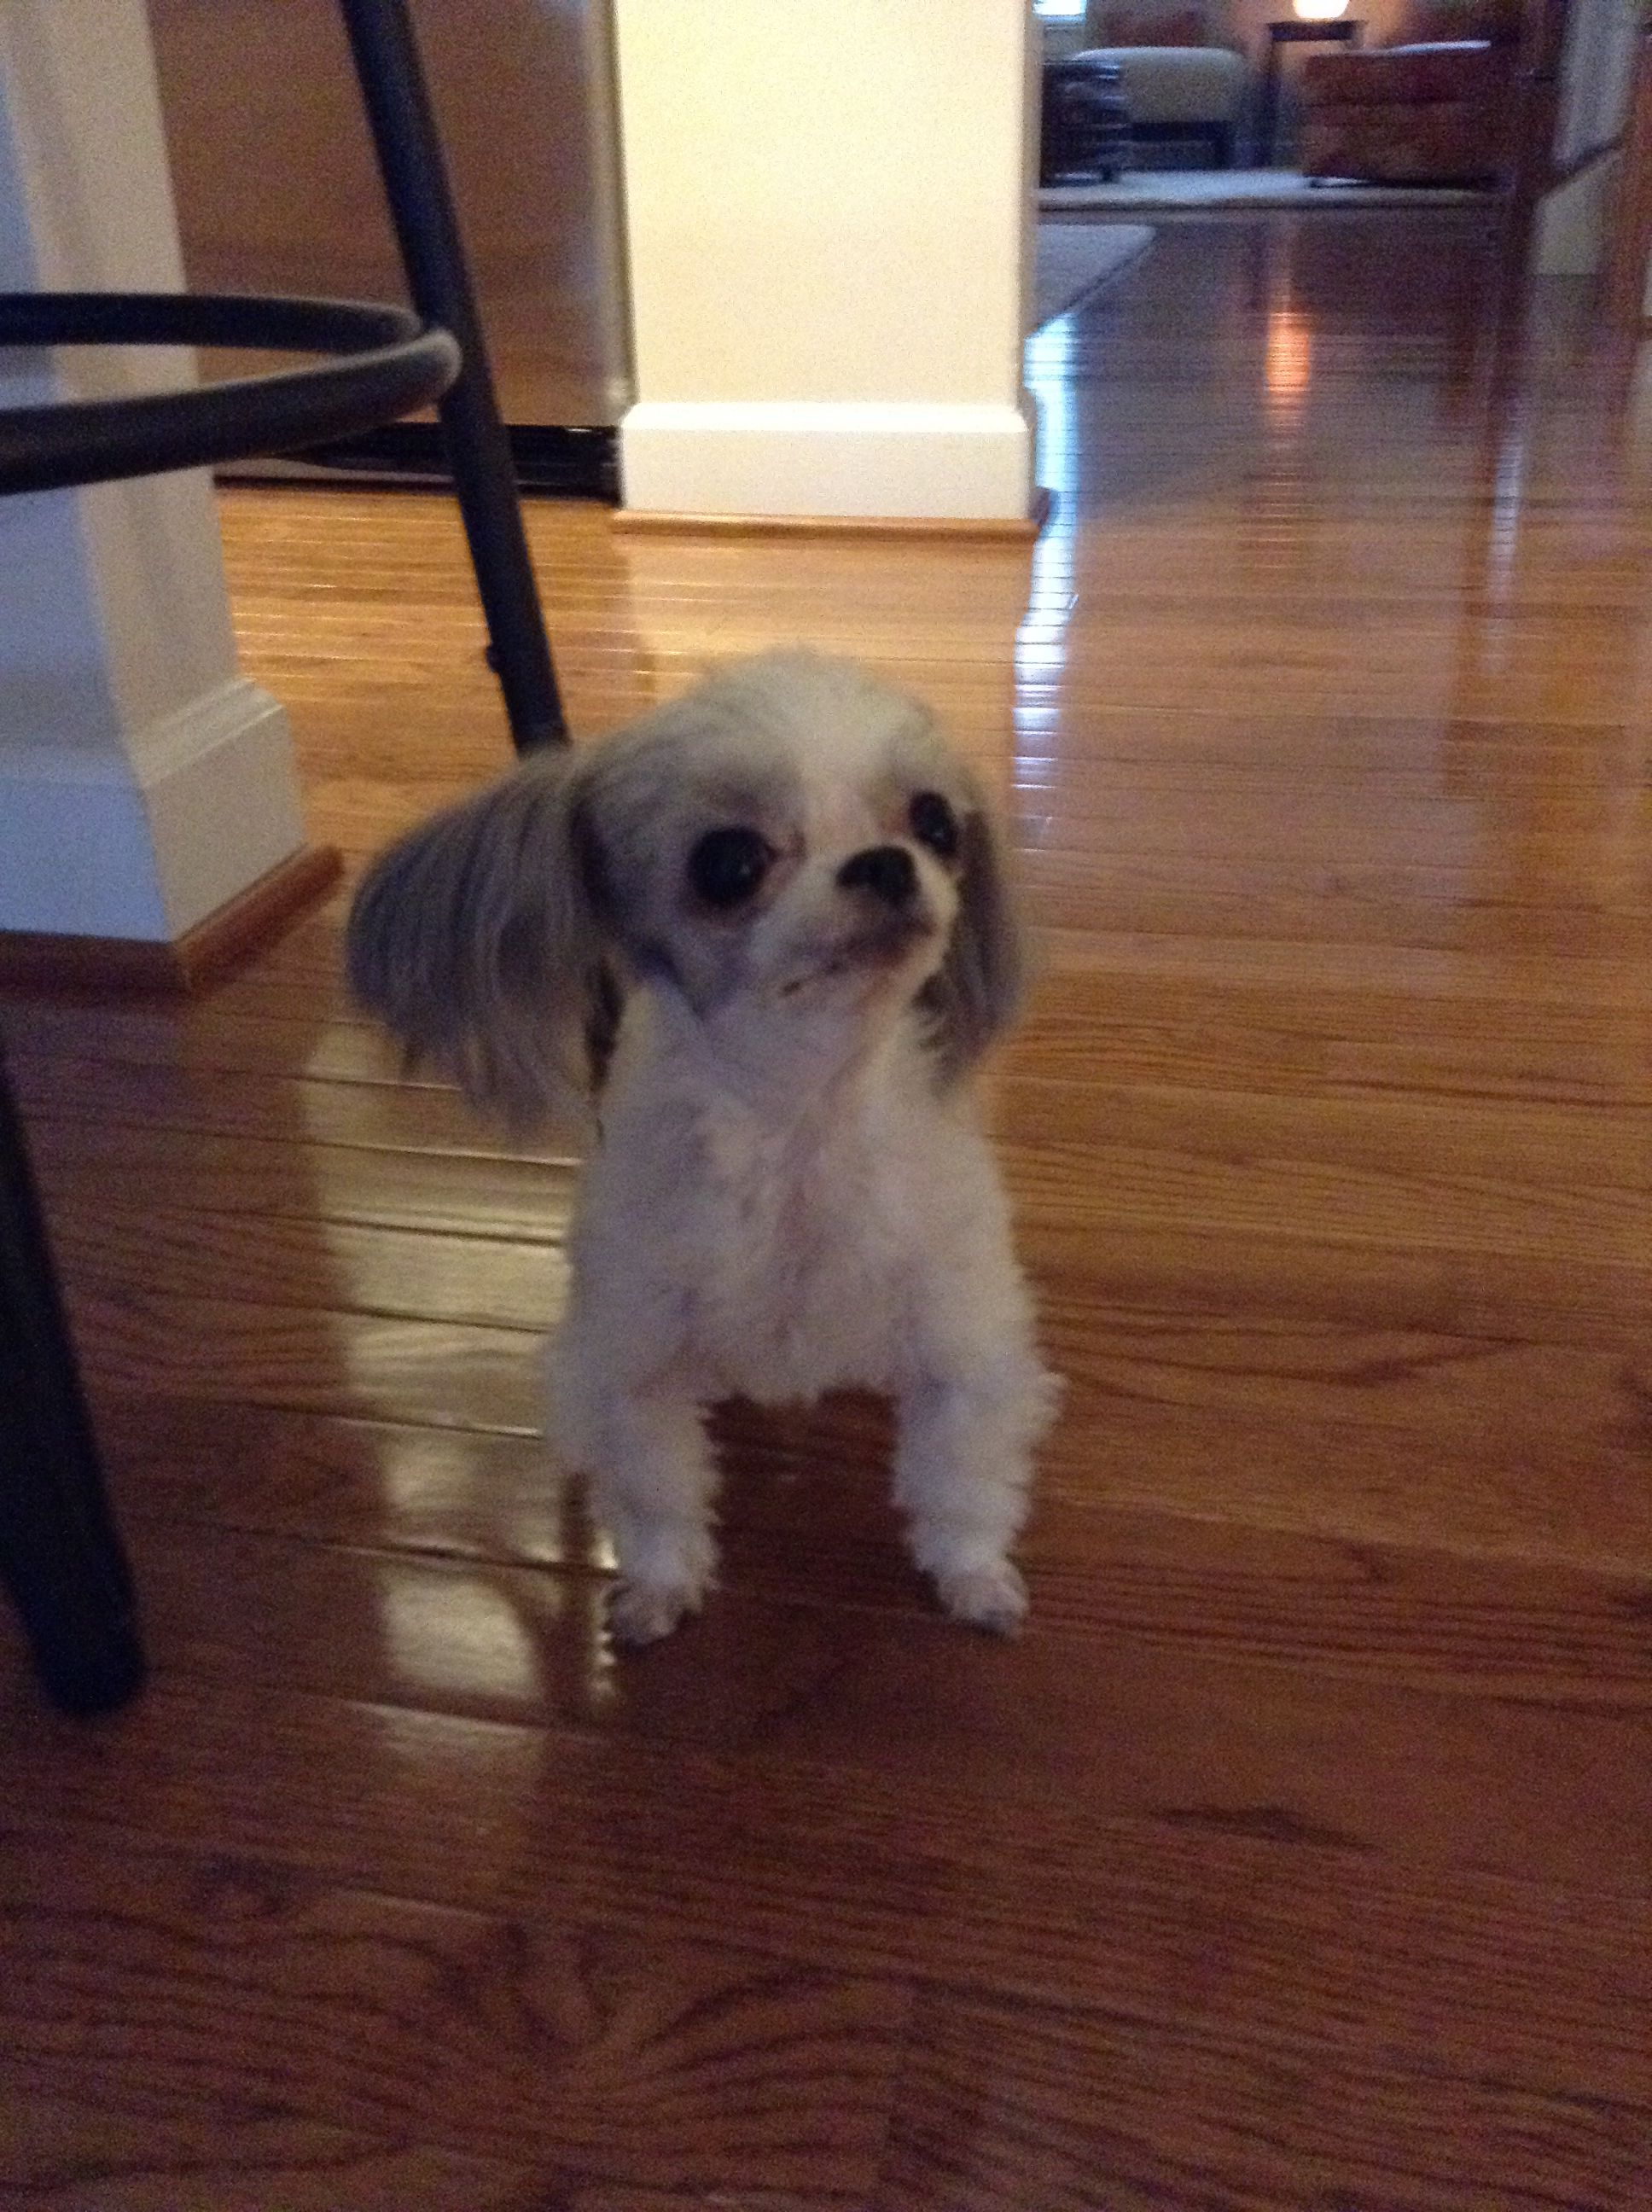 My Own Dog A Breed Called A Miki A Mix Of Japanese Chin Maltese